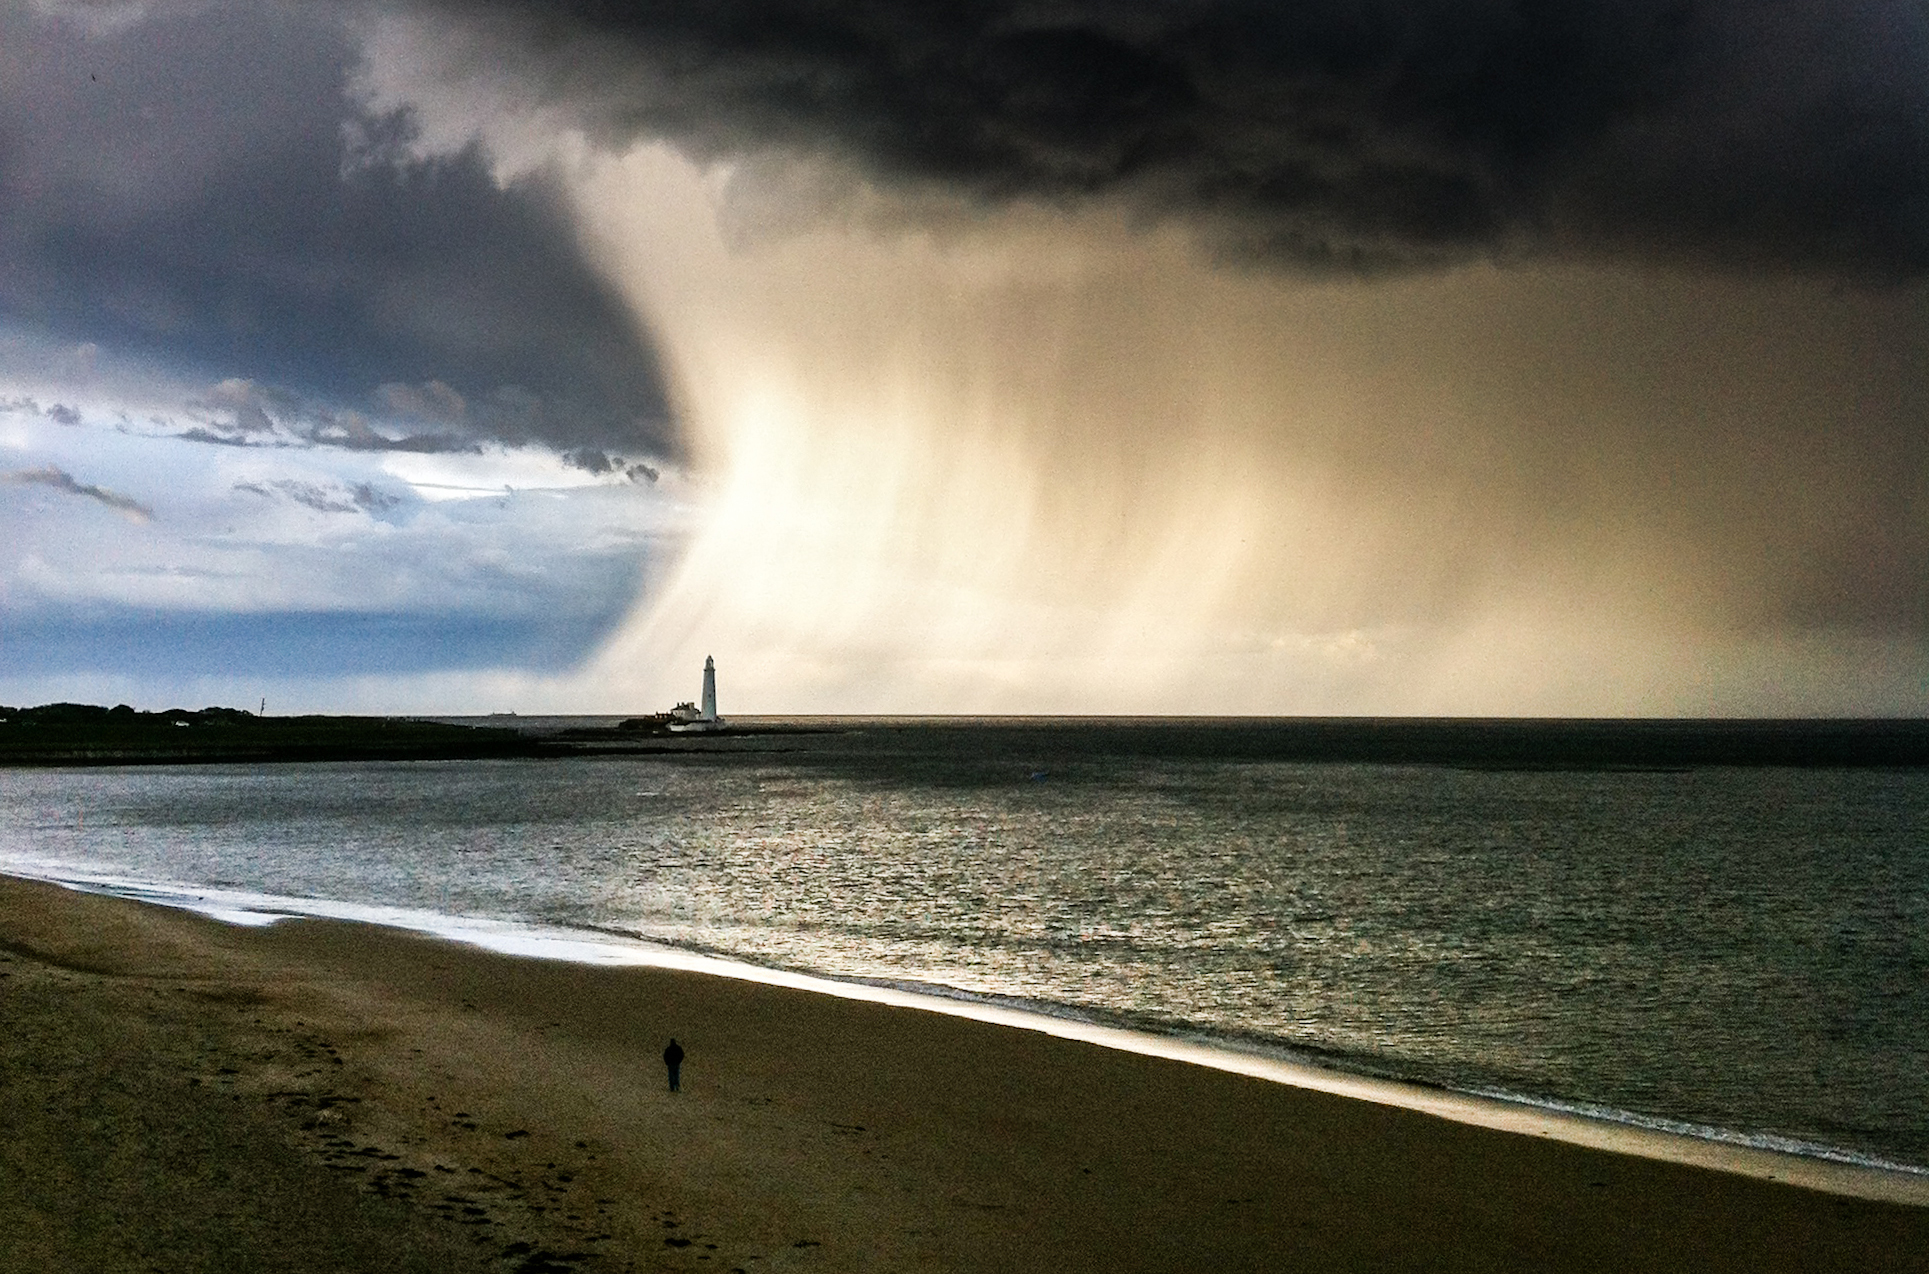 Storm-chasing photographer takes incredible cloudburst photo… with an old iPhone